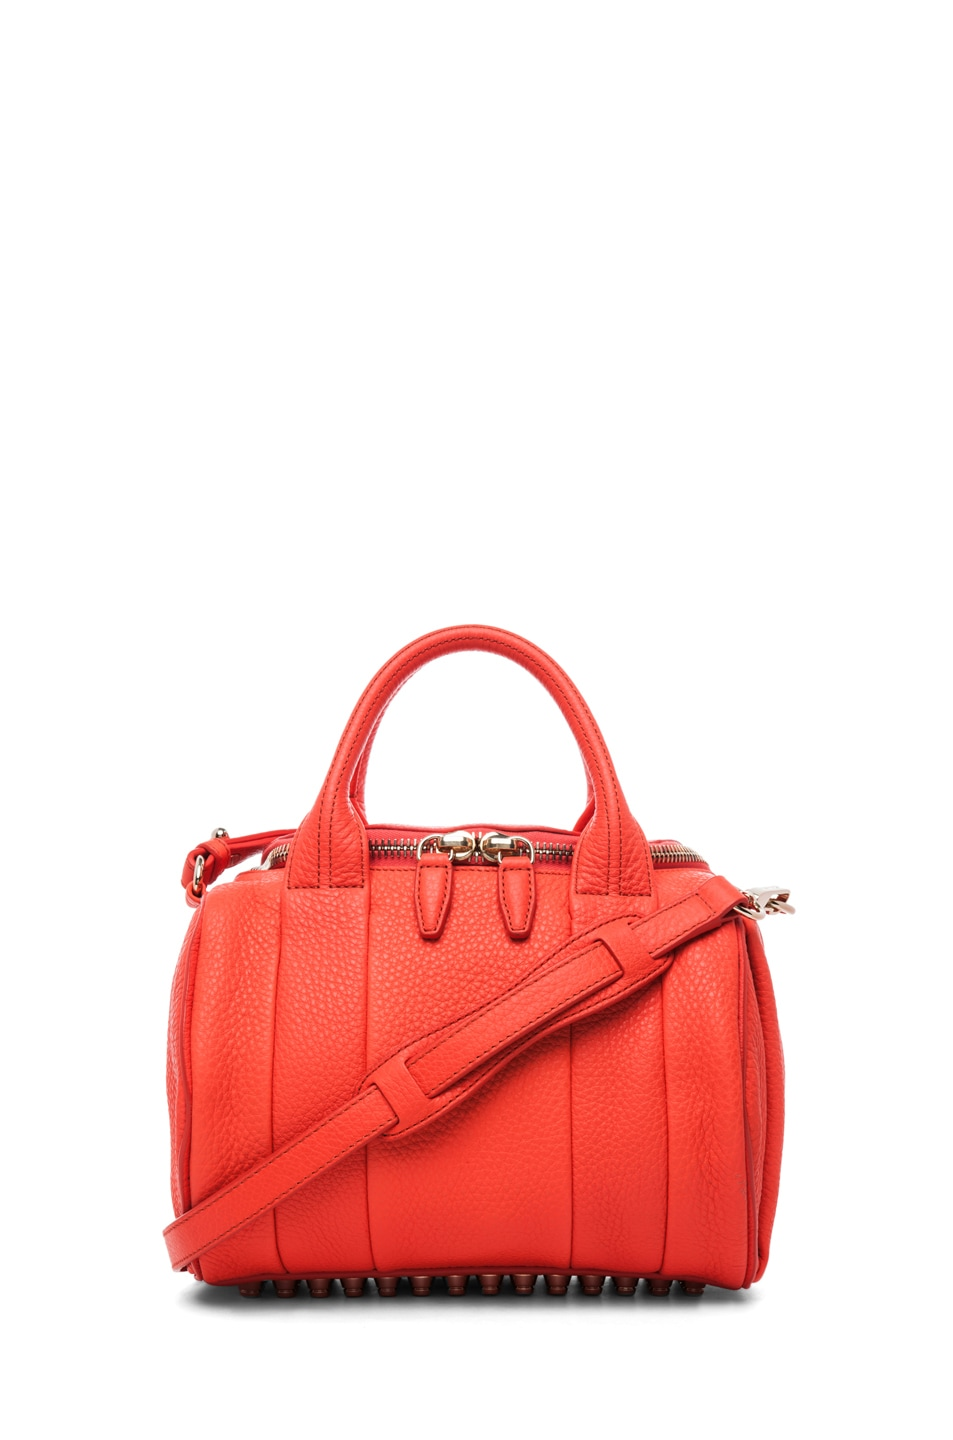 Image 1 of Alexander Wang Rockie Soft Pebble Leather Shoulder Bag in Tang